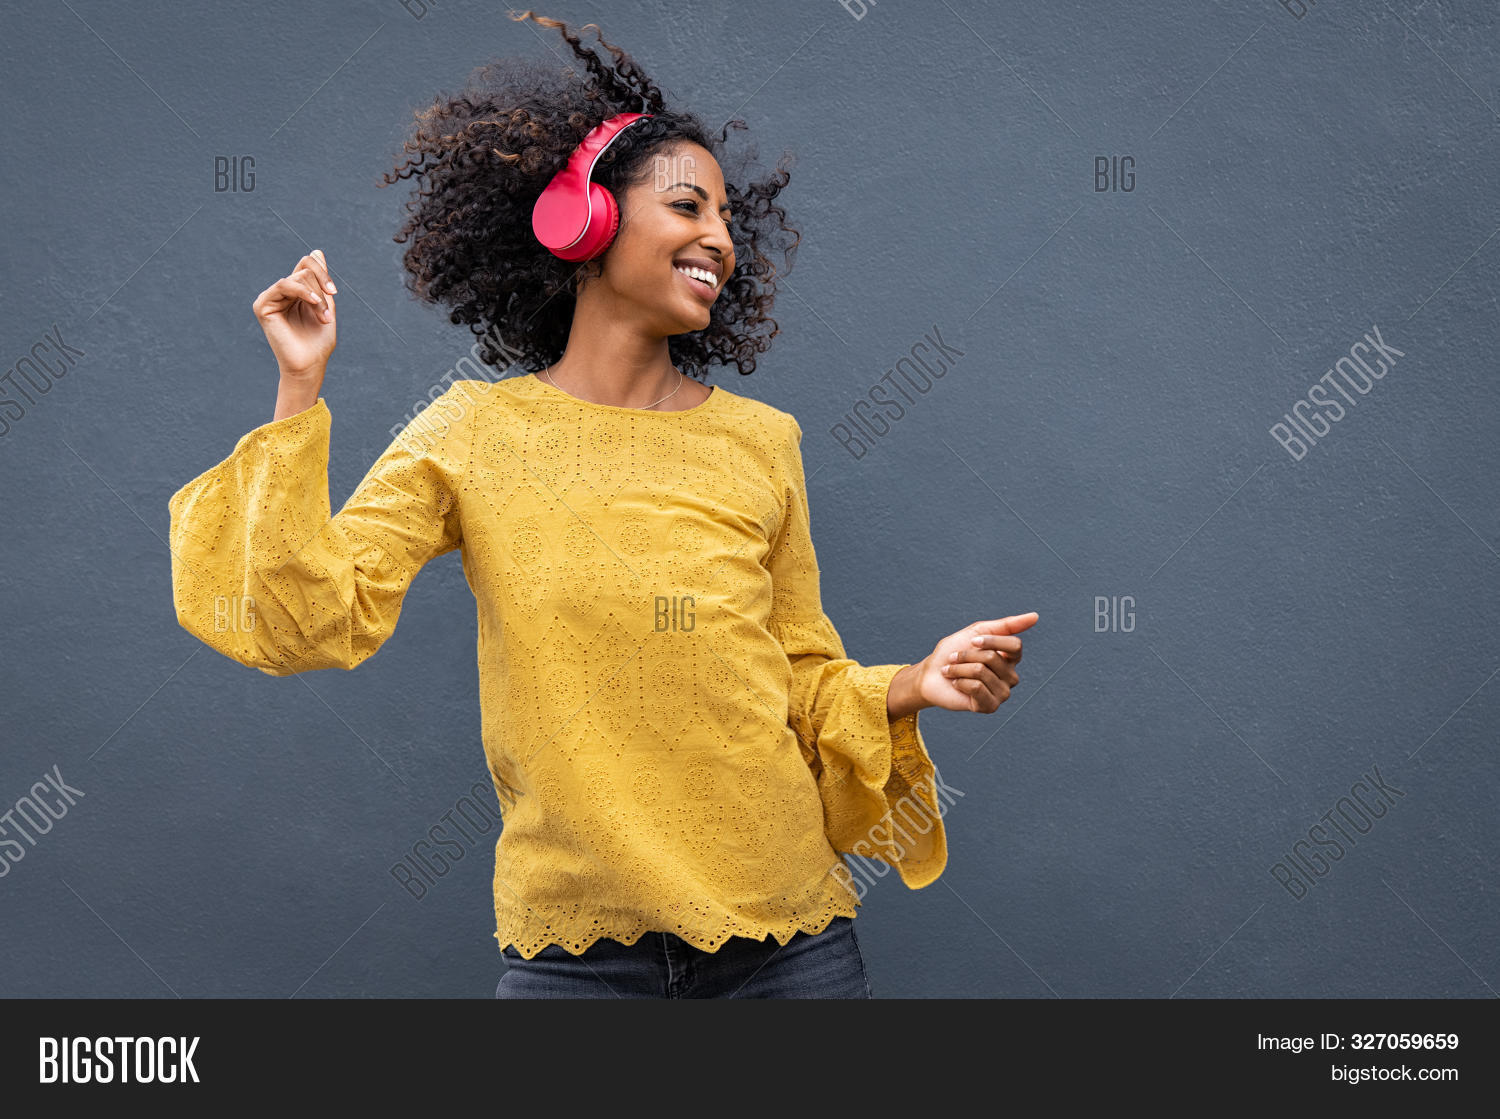 Beautiful black girl listening music. Cheerful young woman with curly hair making dance moves to the rhythm of music while listening through wireless headphones isolated on grey wall.